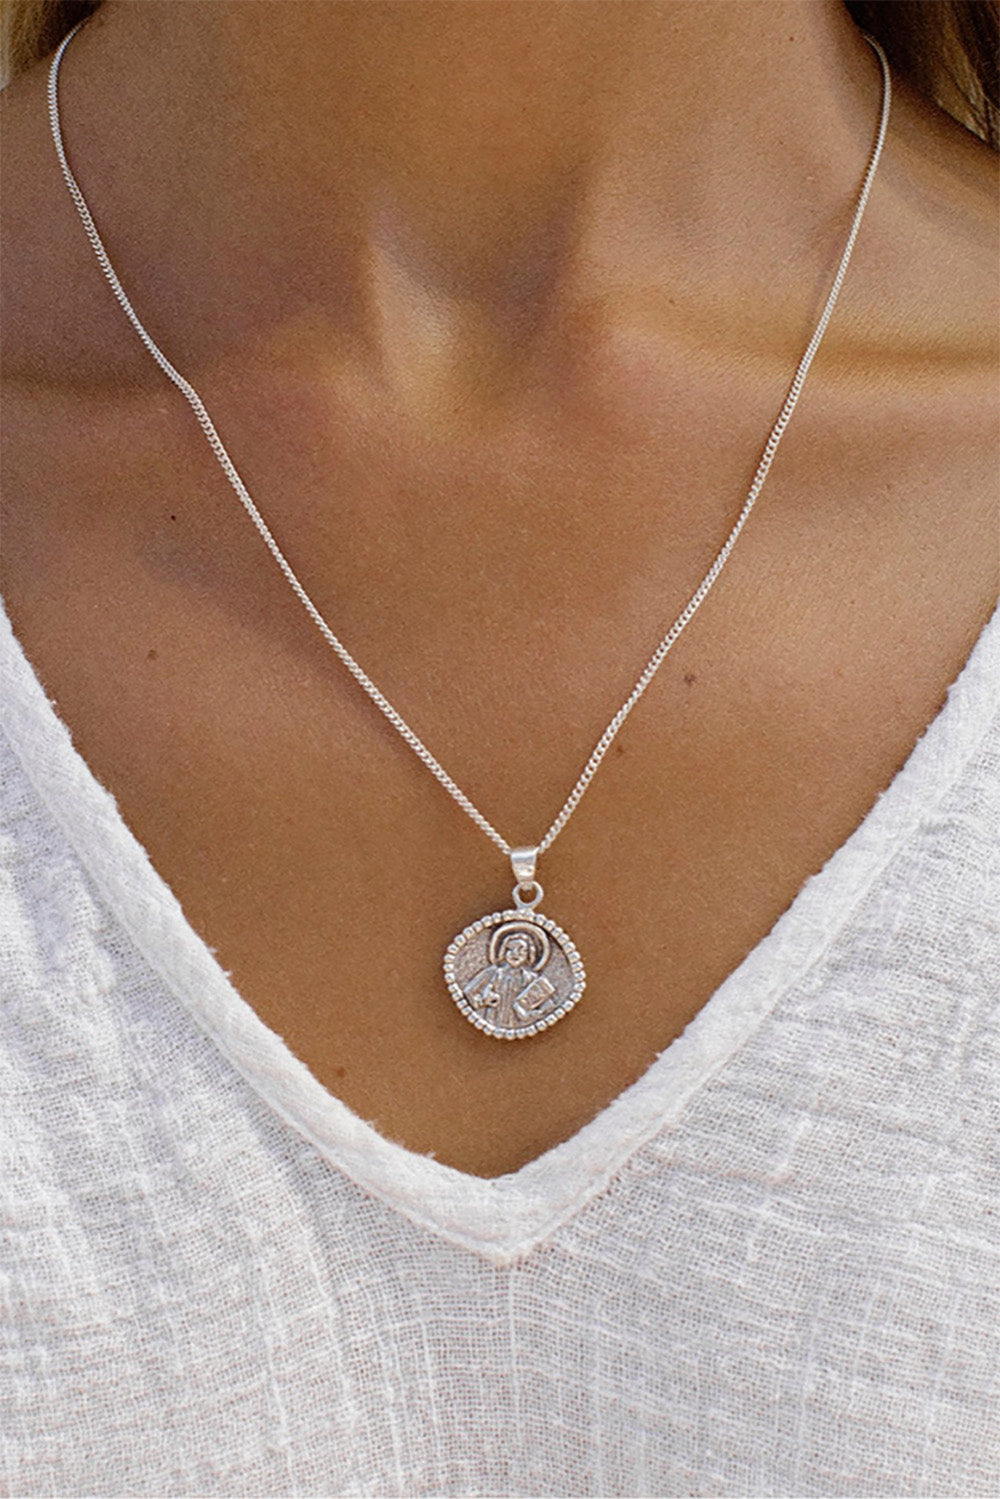 La Luna Rose St. John Patron Saint of Love and Friendships Necklace in Silver